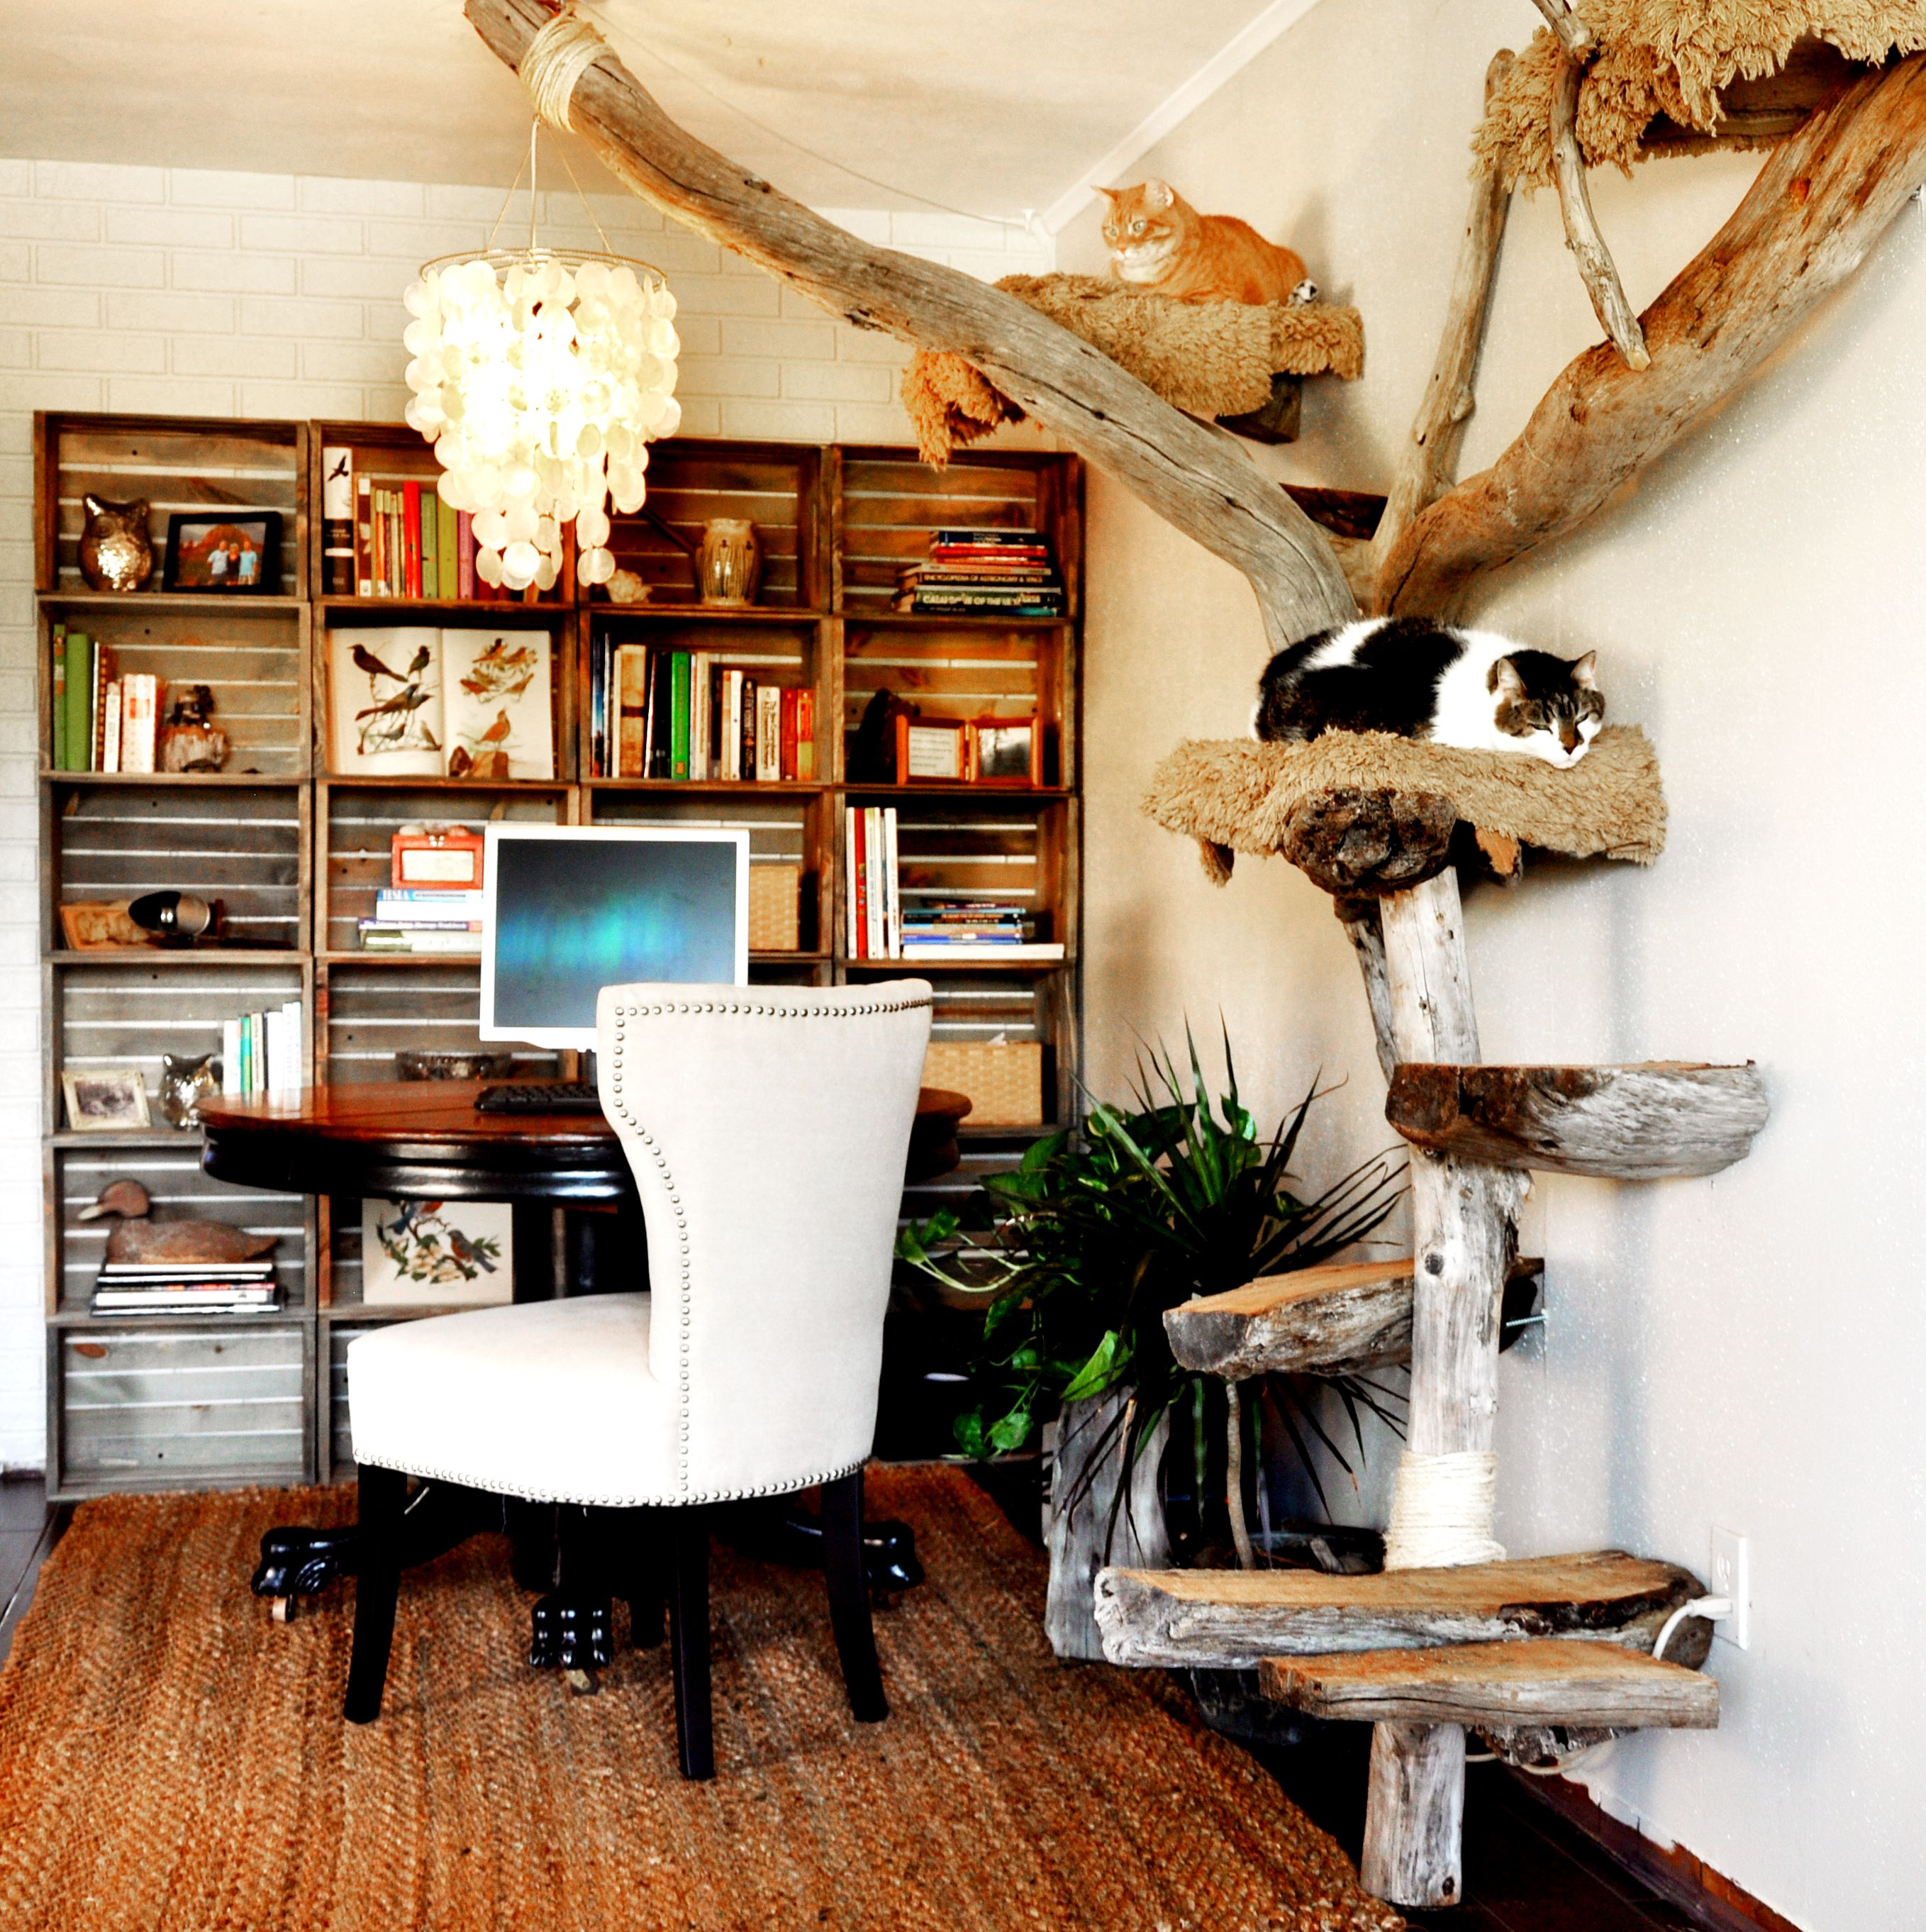 Another view of driftwood cat tree with office space and